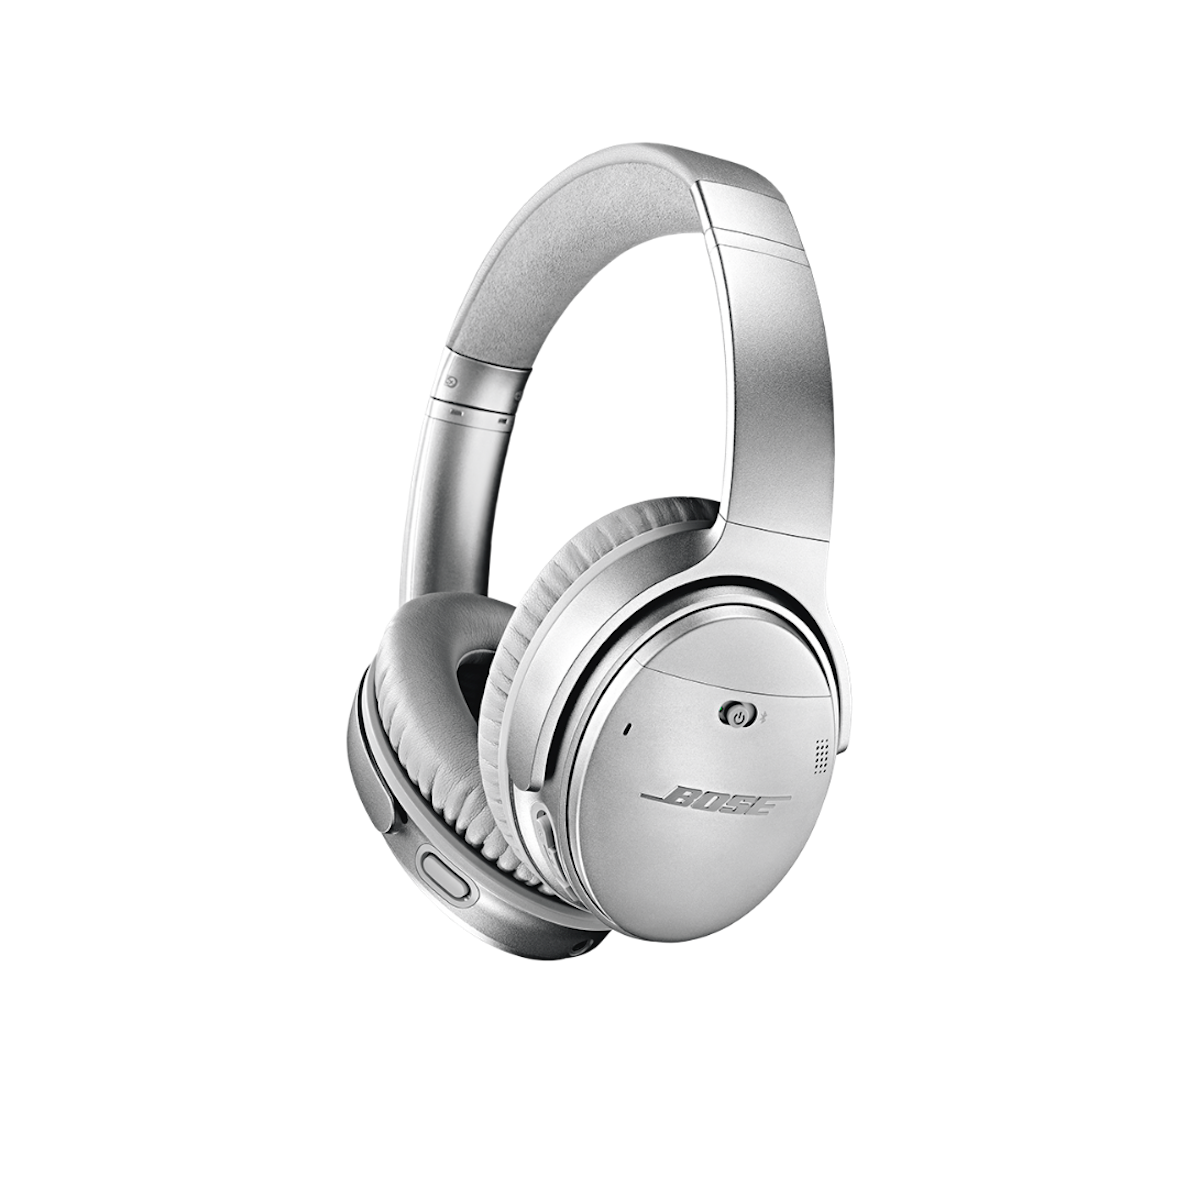 Bose QuietComfort 35 II - Wireless Smart Headphone, Bose, Headphone - AVStore.in